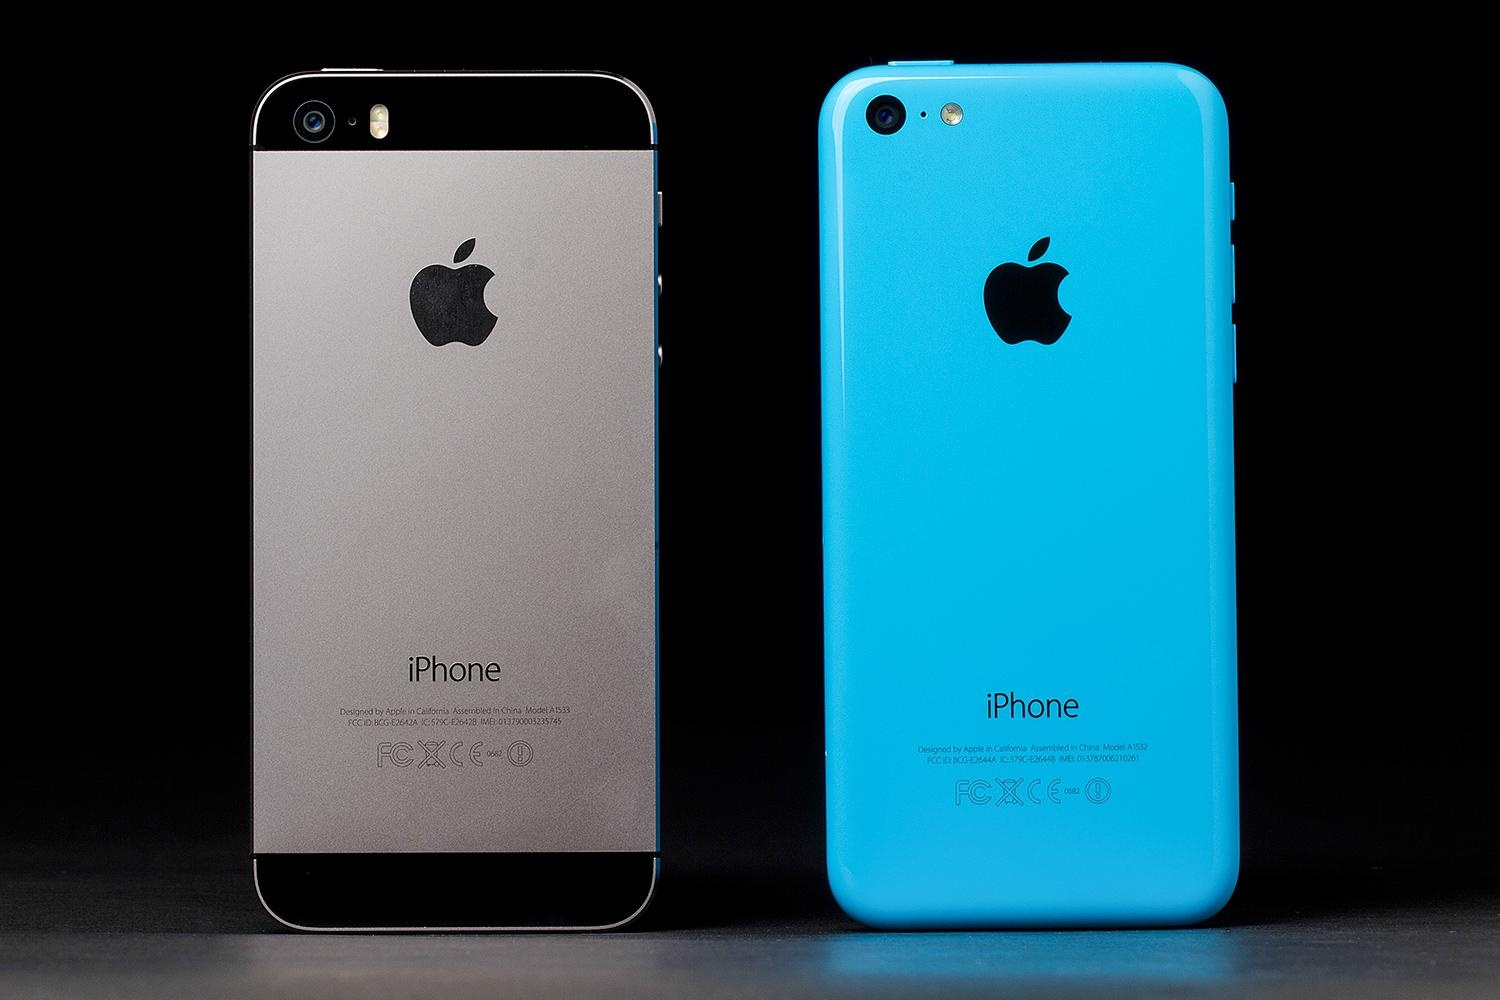 iphone 5c specs iii radical hub. Black Bedroom Furniture Sets. Home Design Ideas